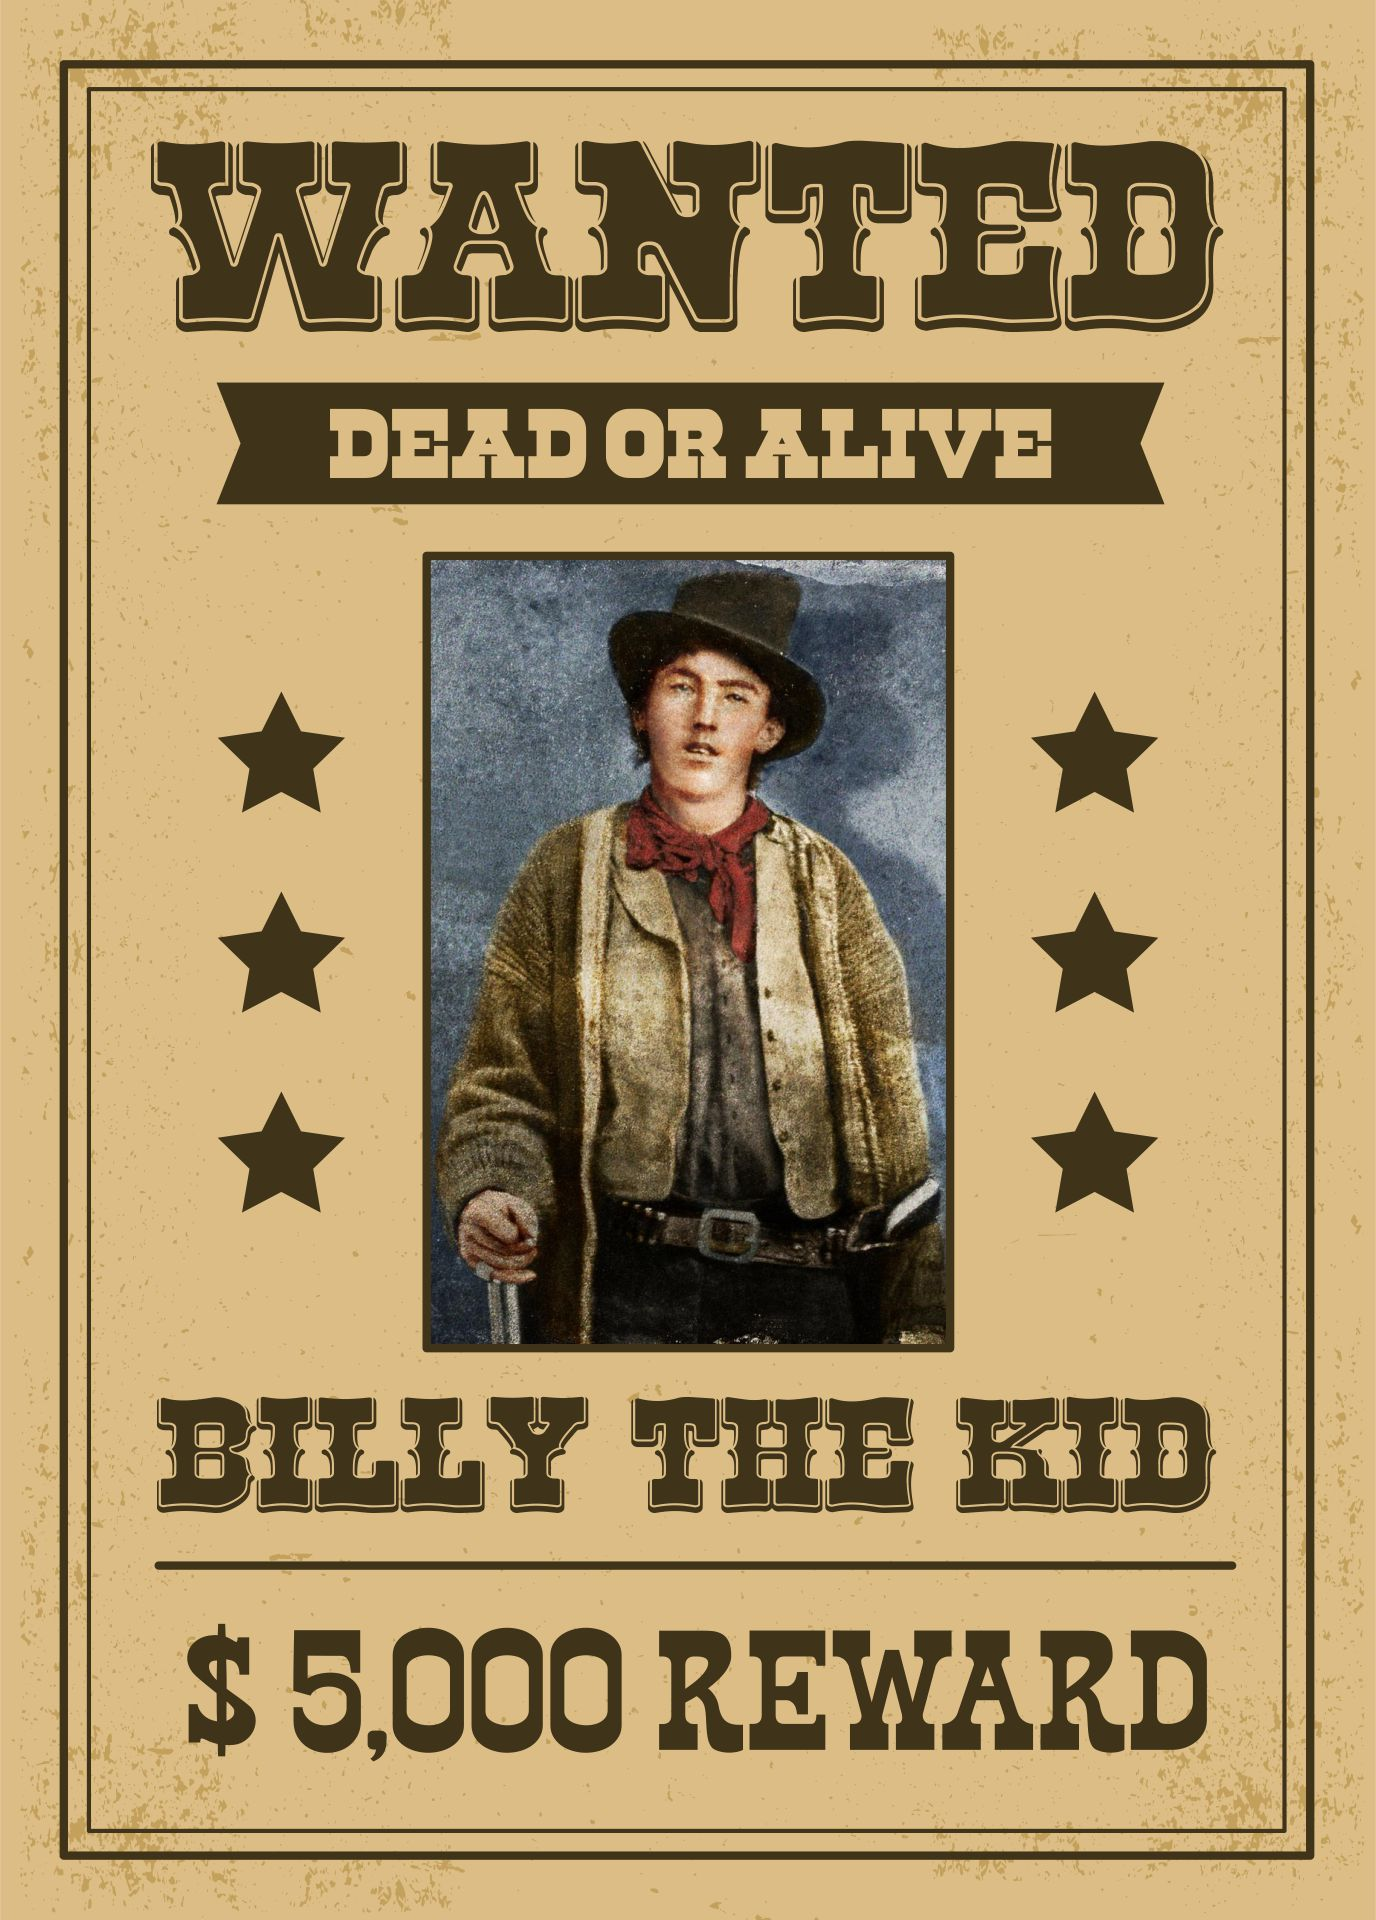 Old West Wanted Poster Billy the Kid